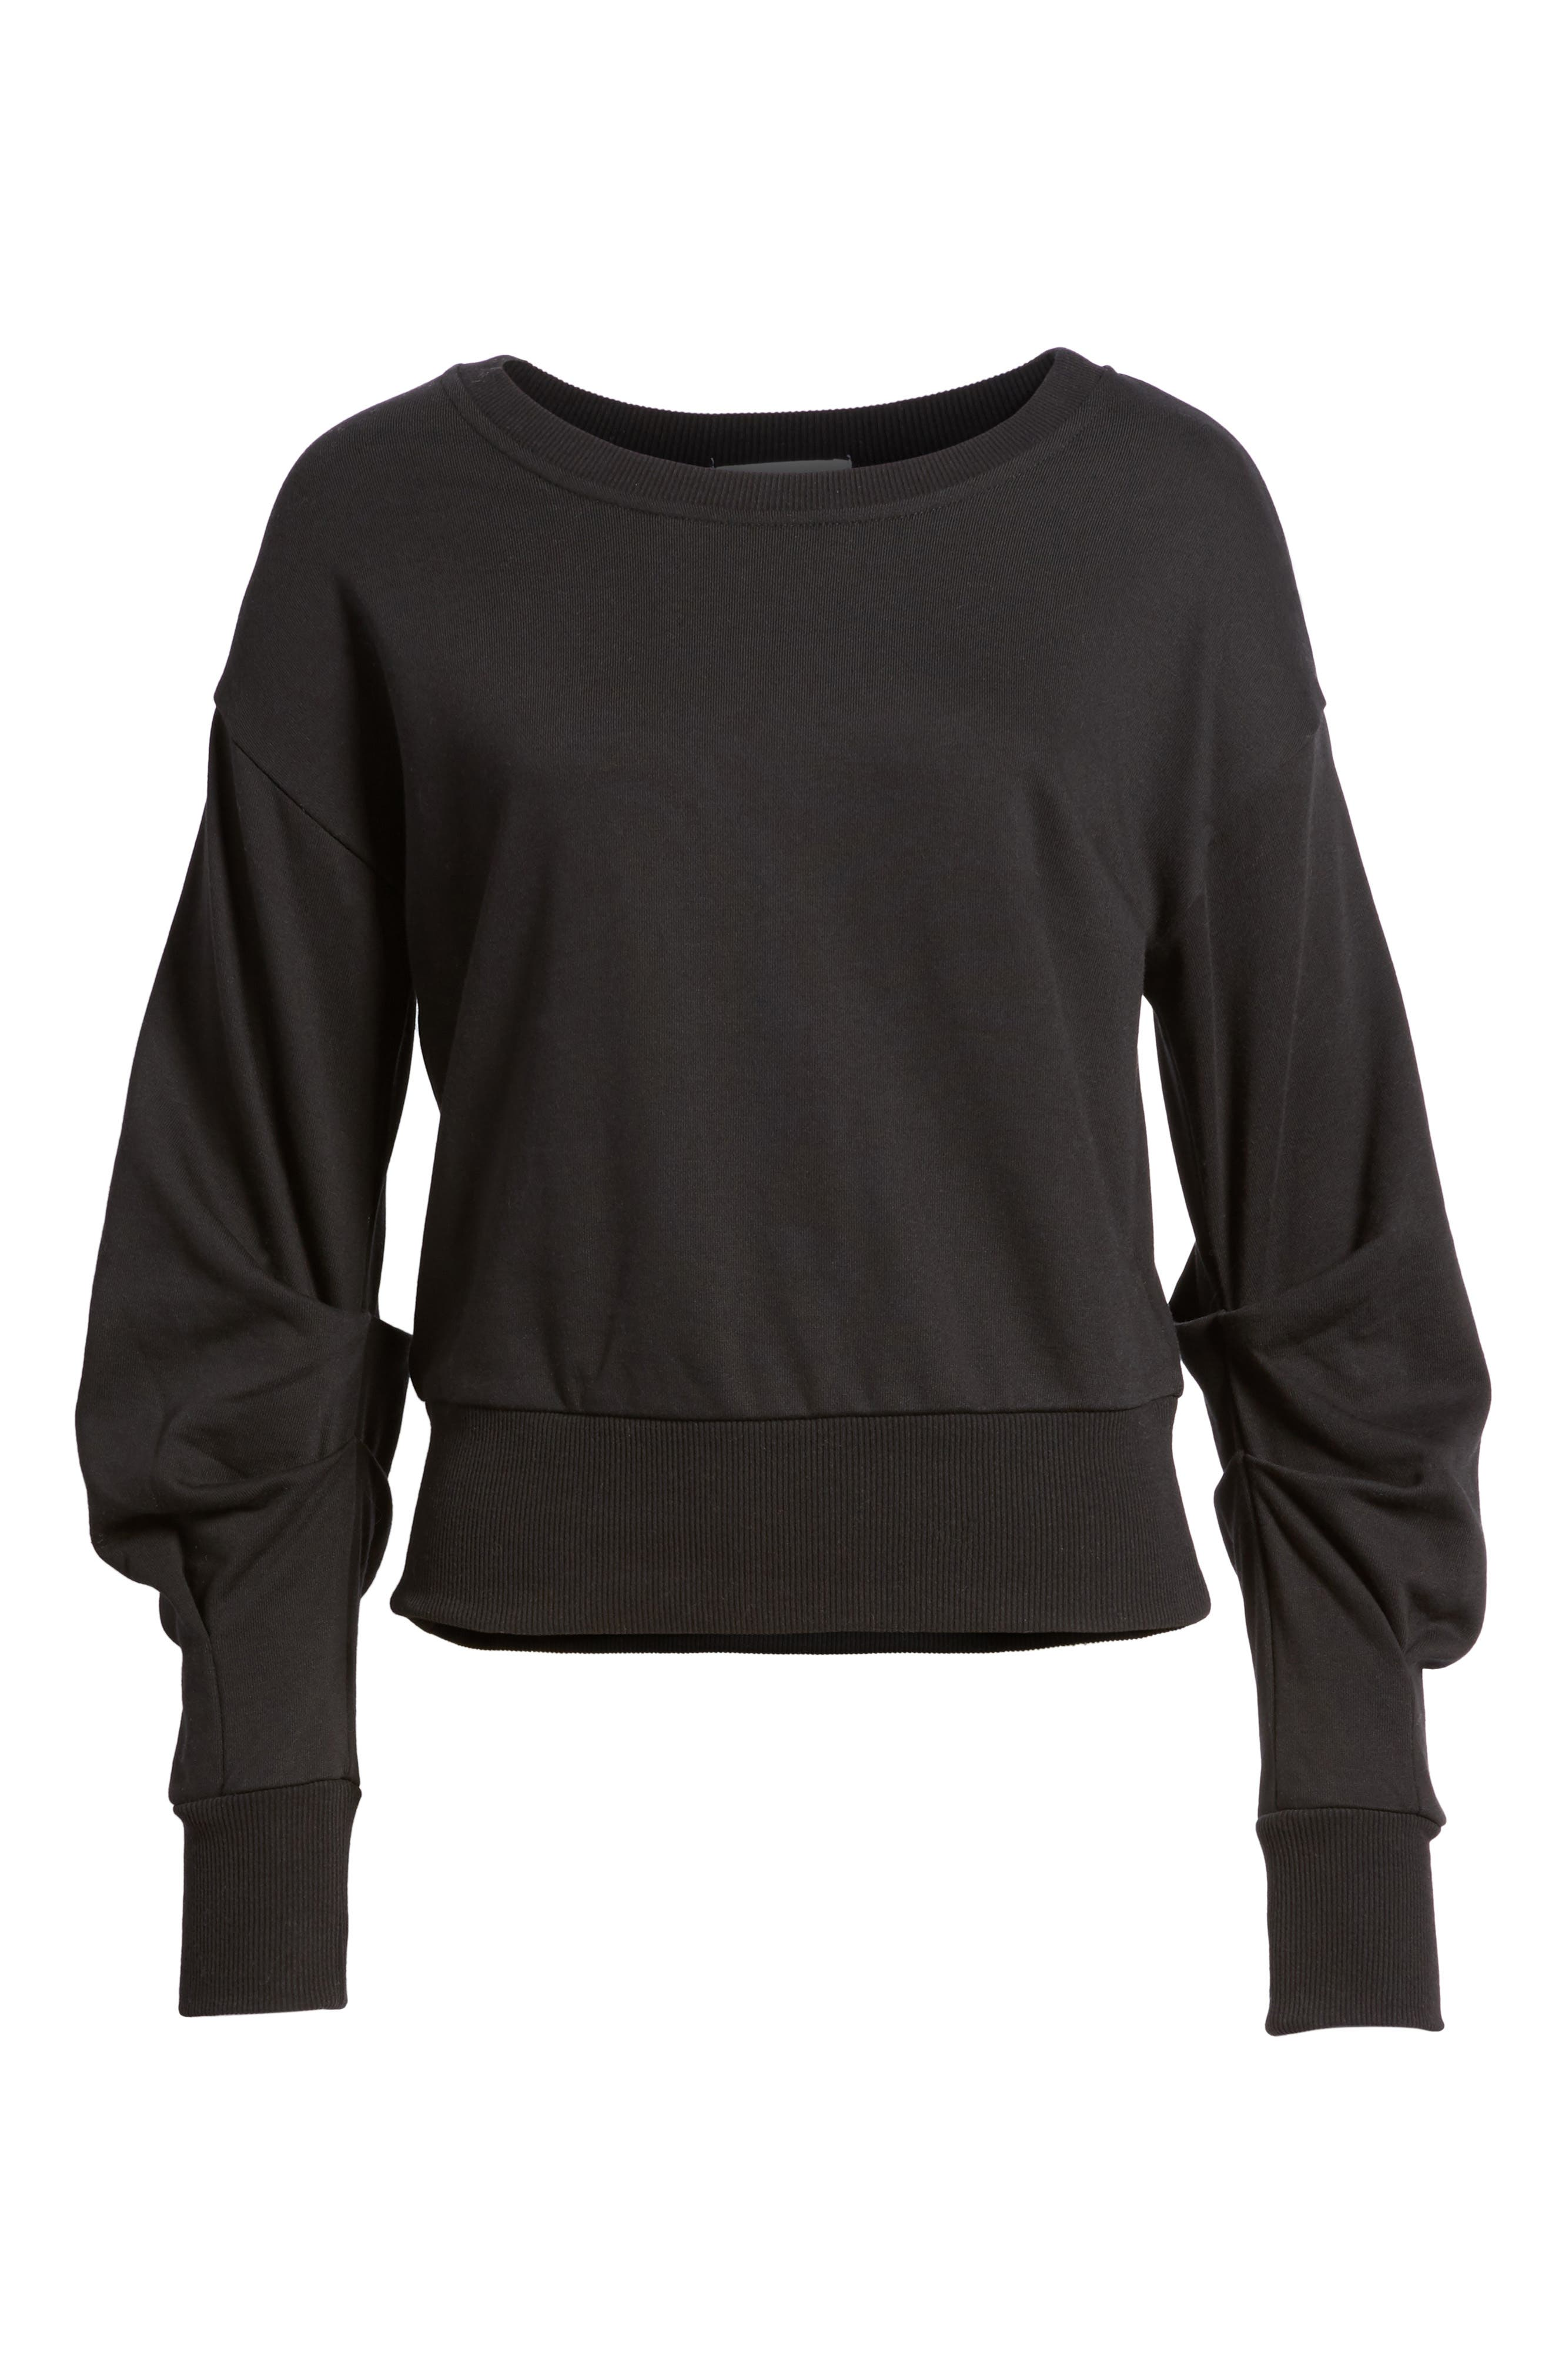 Ruched Sleeve Sweatshirt,                             Alternate thumbnail 6, color,                             001